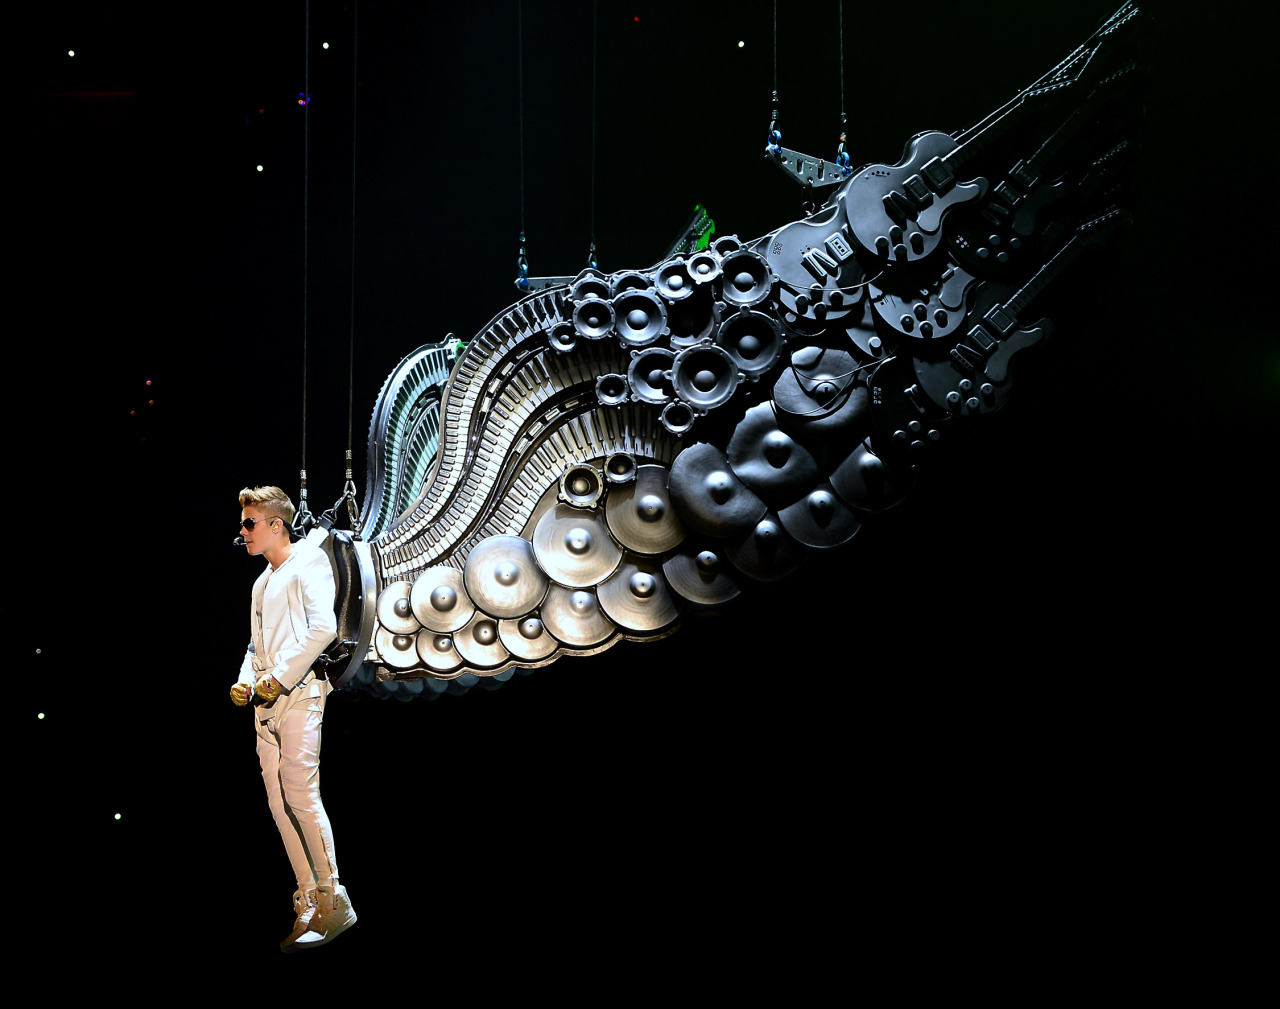 Justin Biebird. Justin Bieber performs on stage during a repetition on Tuesday in Charlotte. Justin Biebird. Le chanteur star Justin Bieber en plein show aérien durant une répetition dans la ville de Charlotte. PHOTOGRAPHER : AP PHOTO/THE CHARLOTTE OBSERVER, JEFF SINER